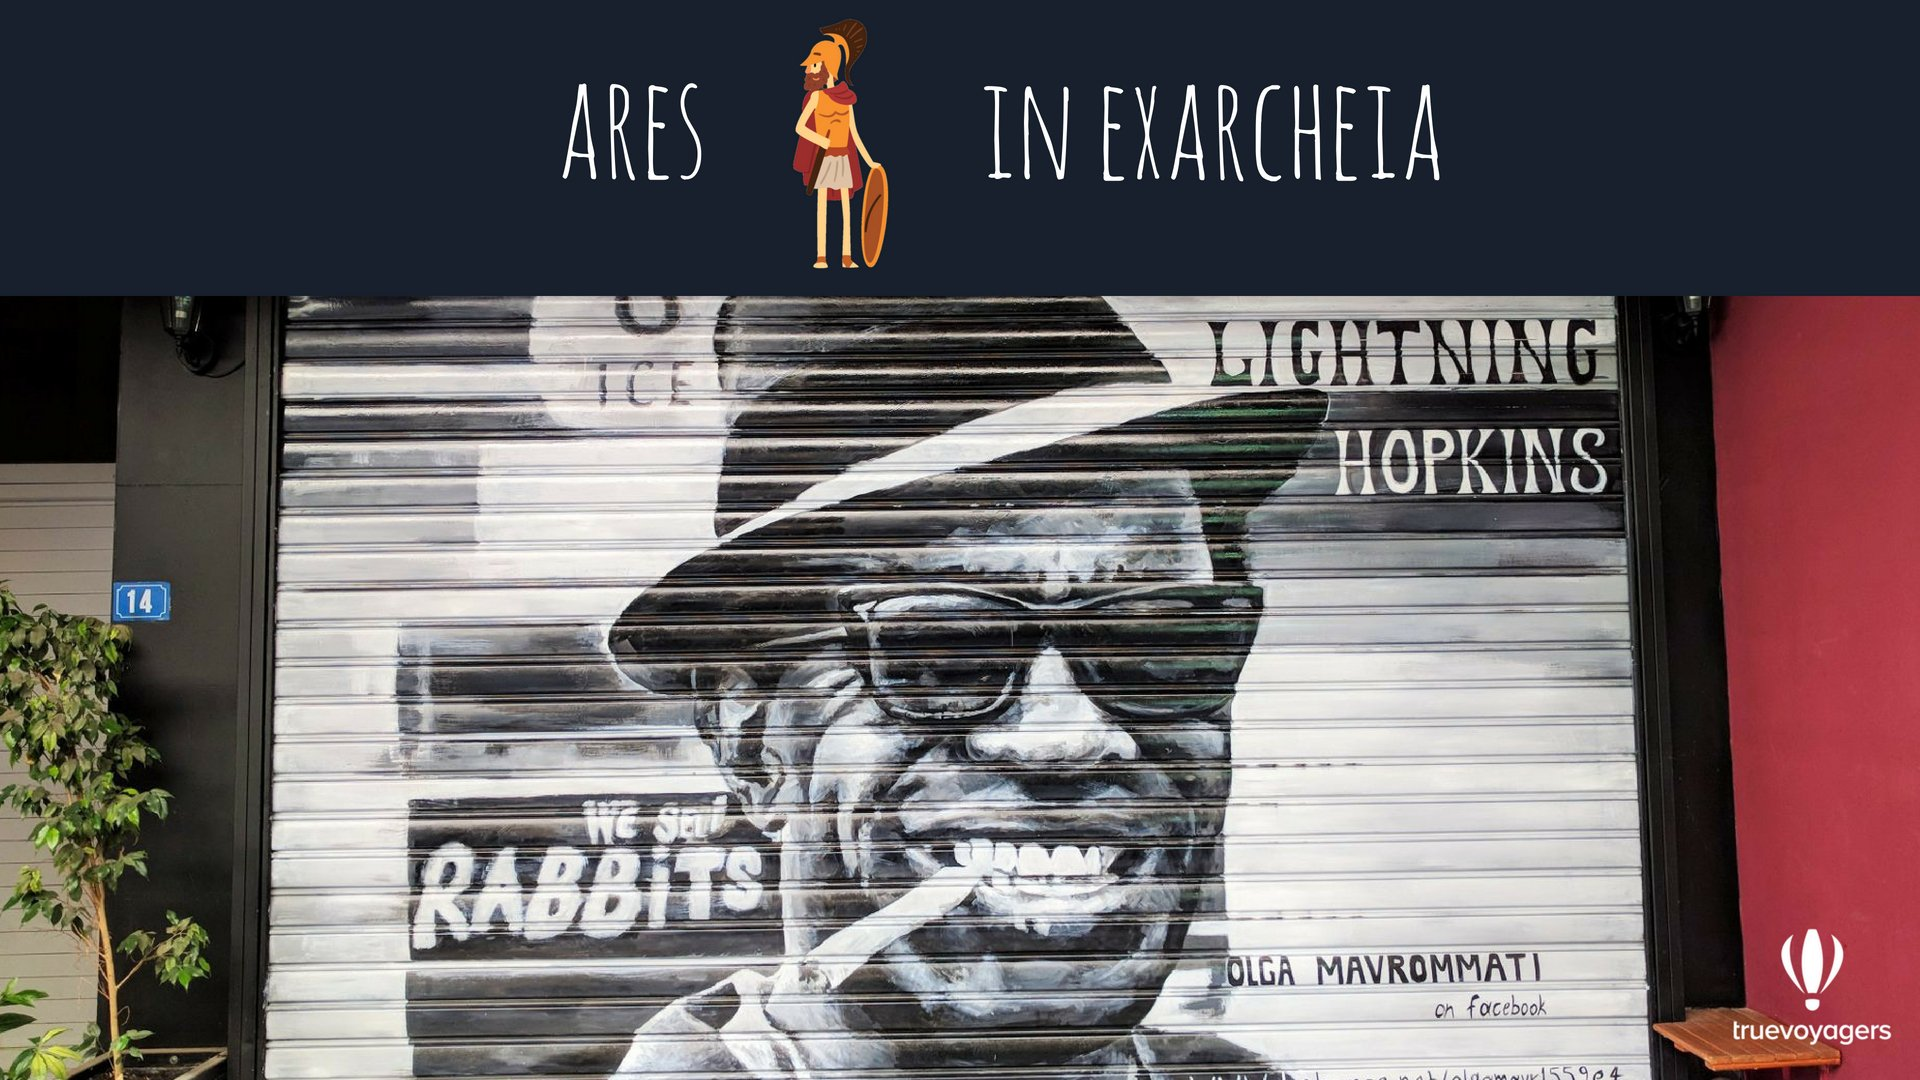 Ares in Exarcheia. Copyright: Truevoyagers